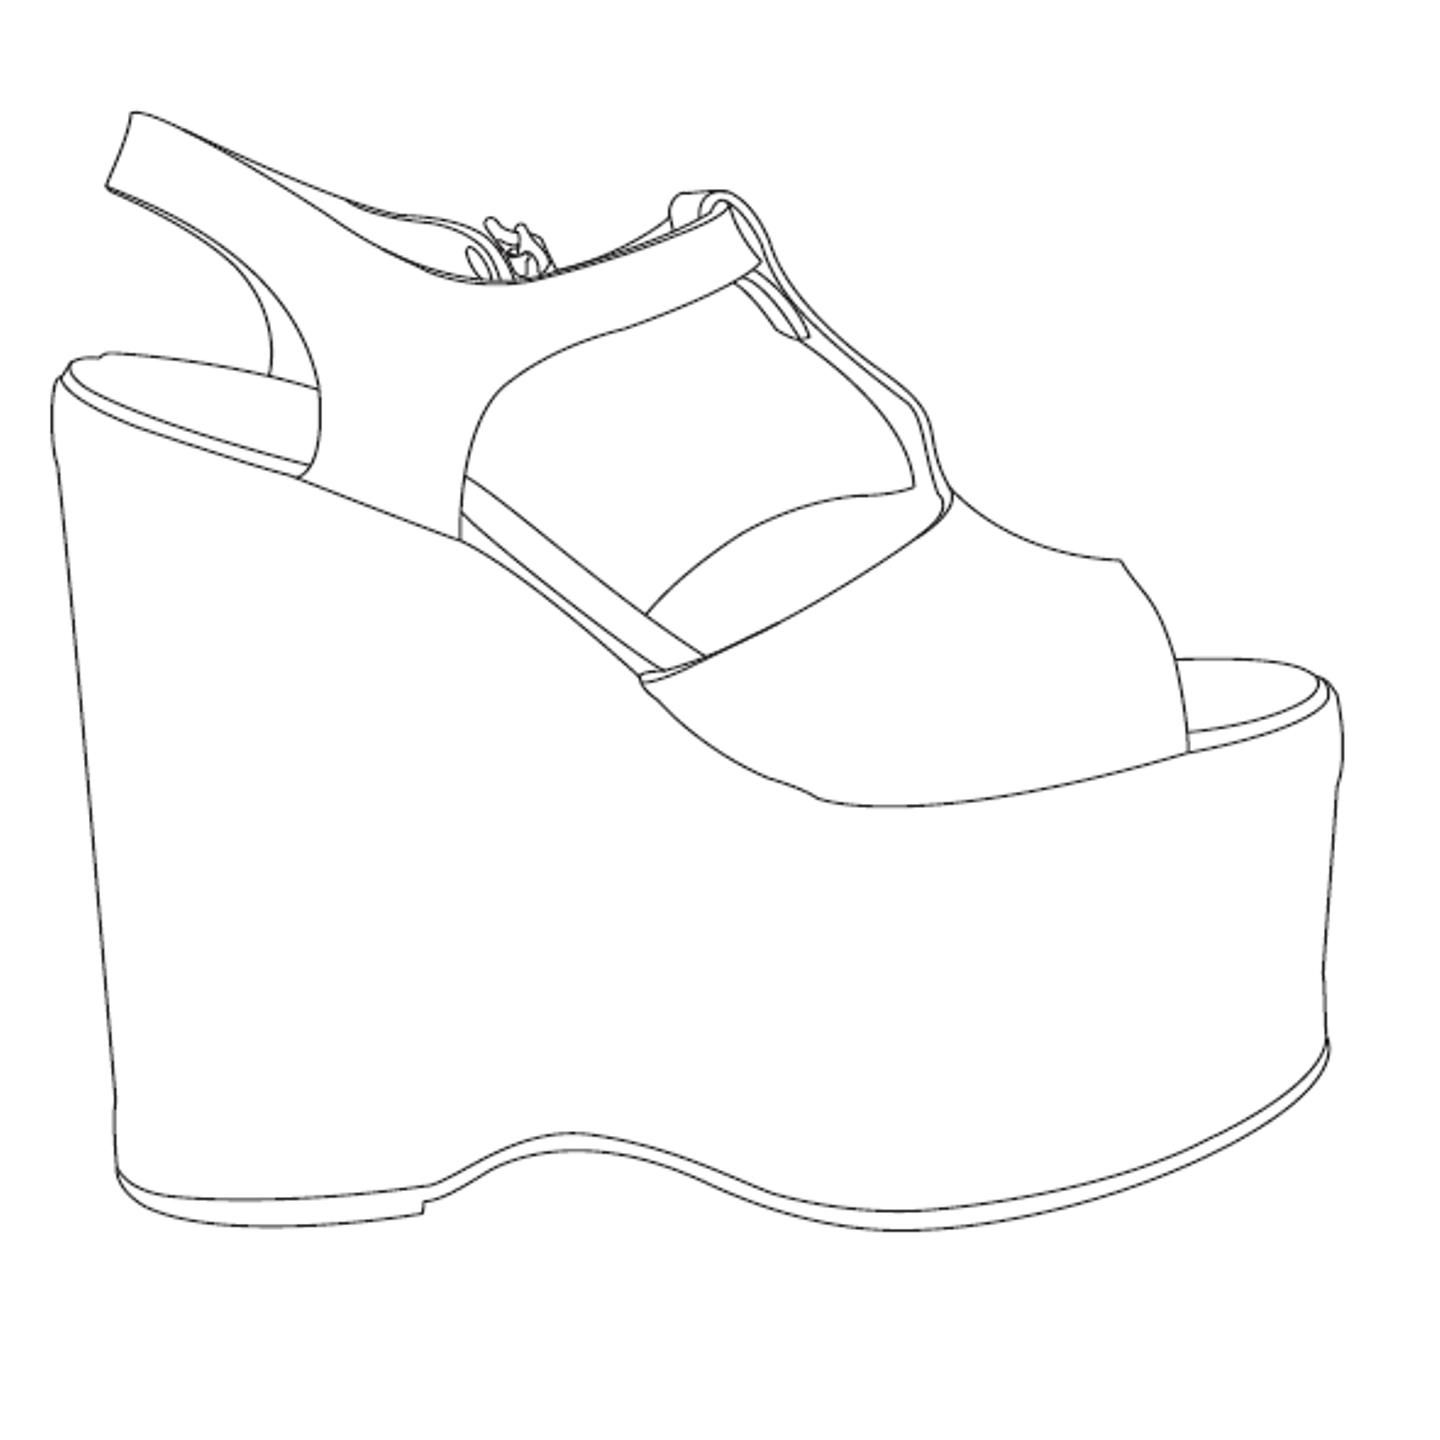 Free Shoe Outline Template Download Free Clip Art Free Clip Art On Clipart Library Shoe Design Sketches Shoe Template Fashion Templates